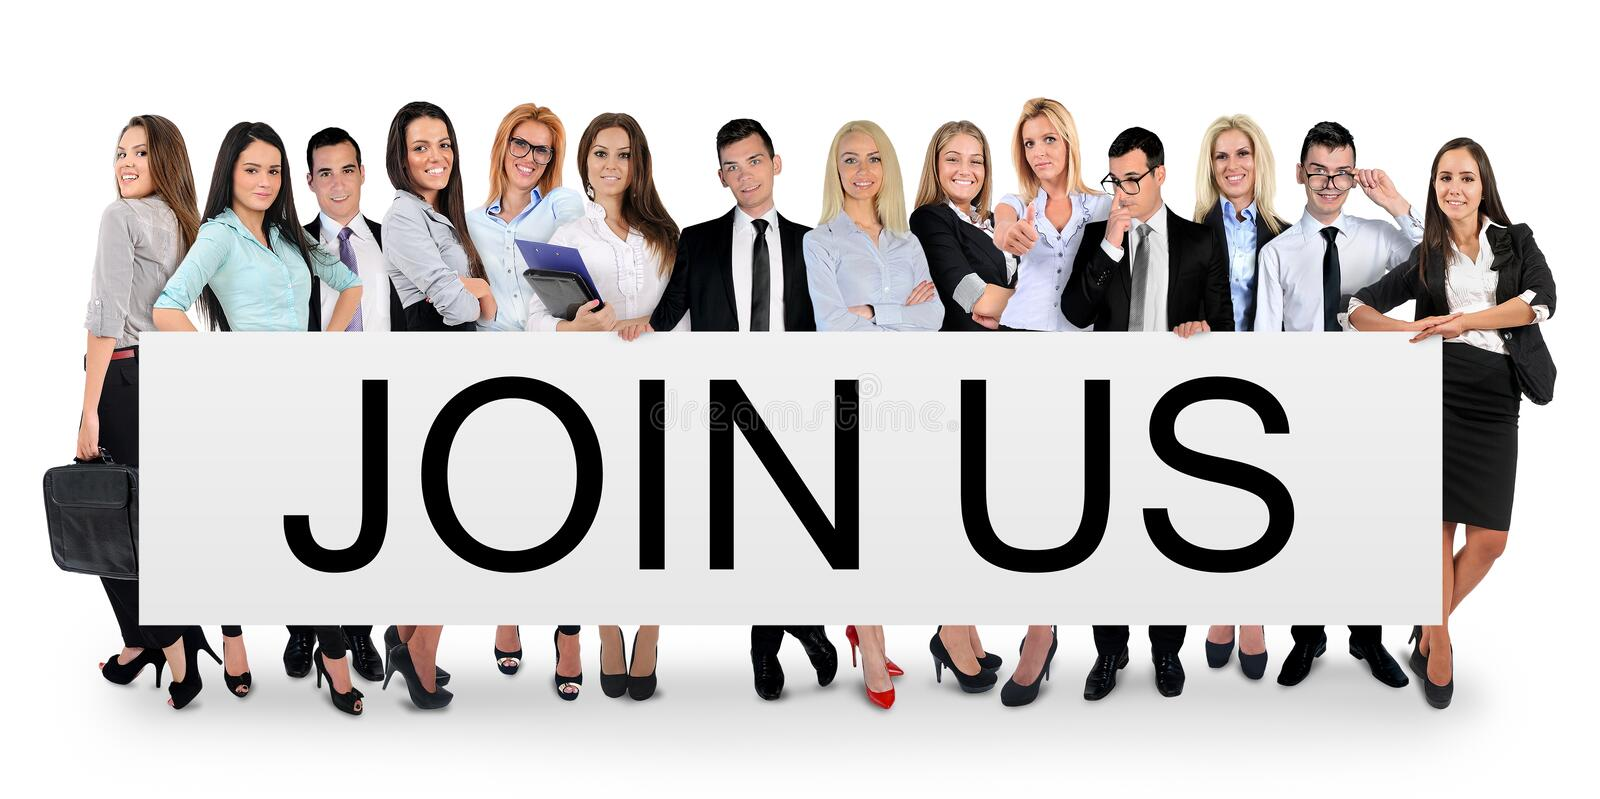 Join us word on banner stock photo